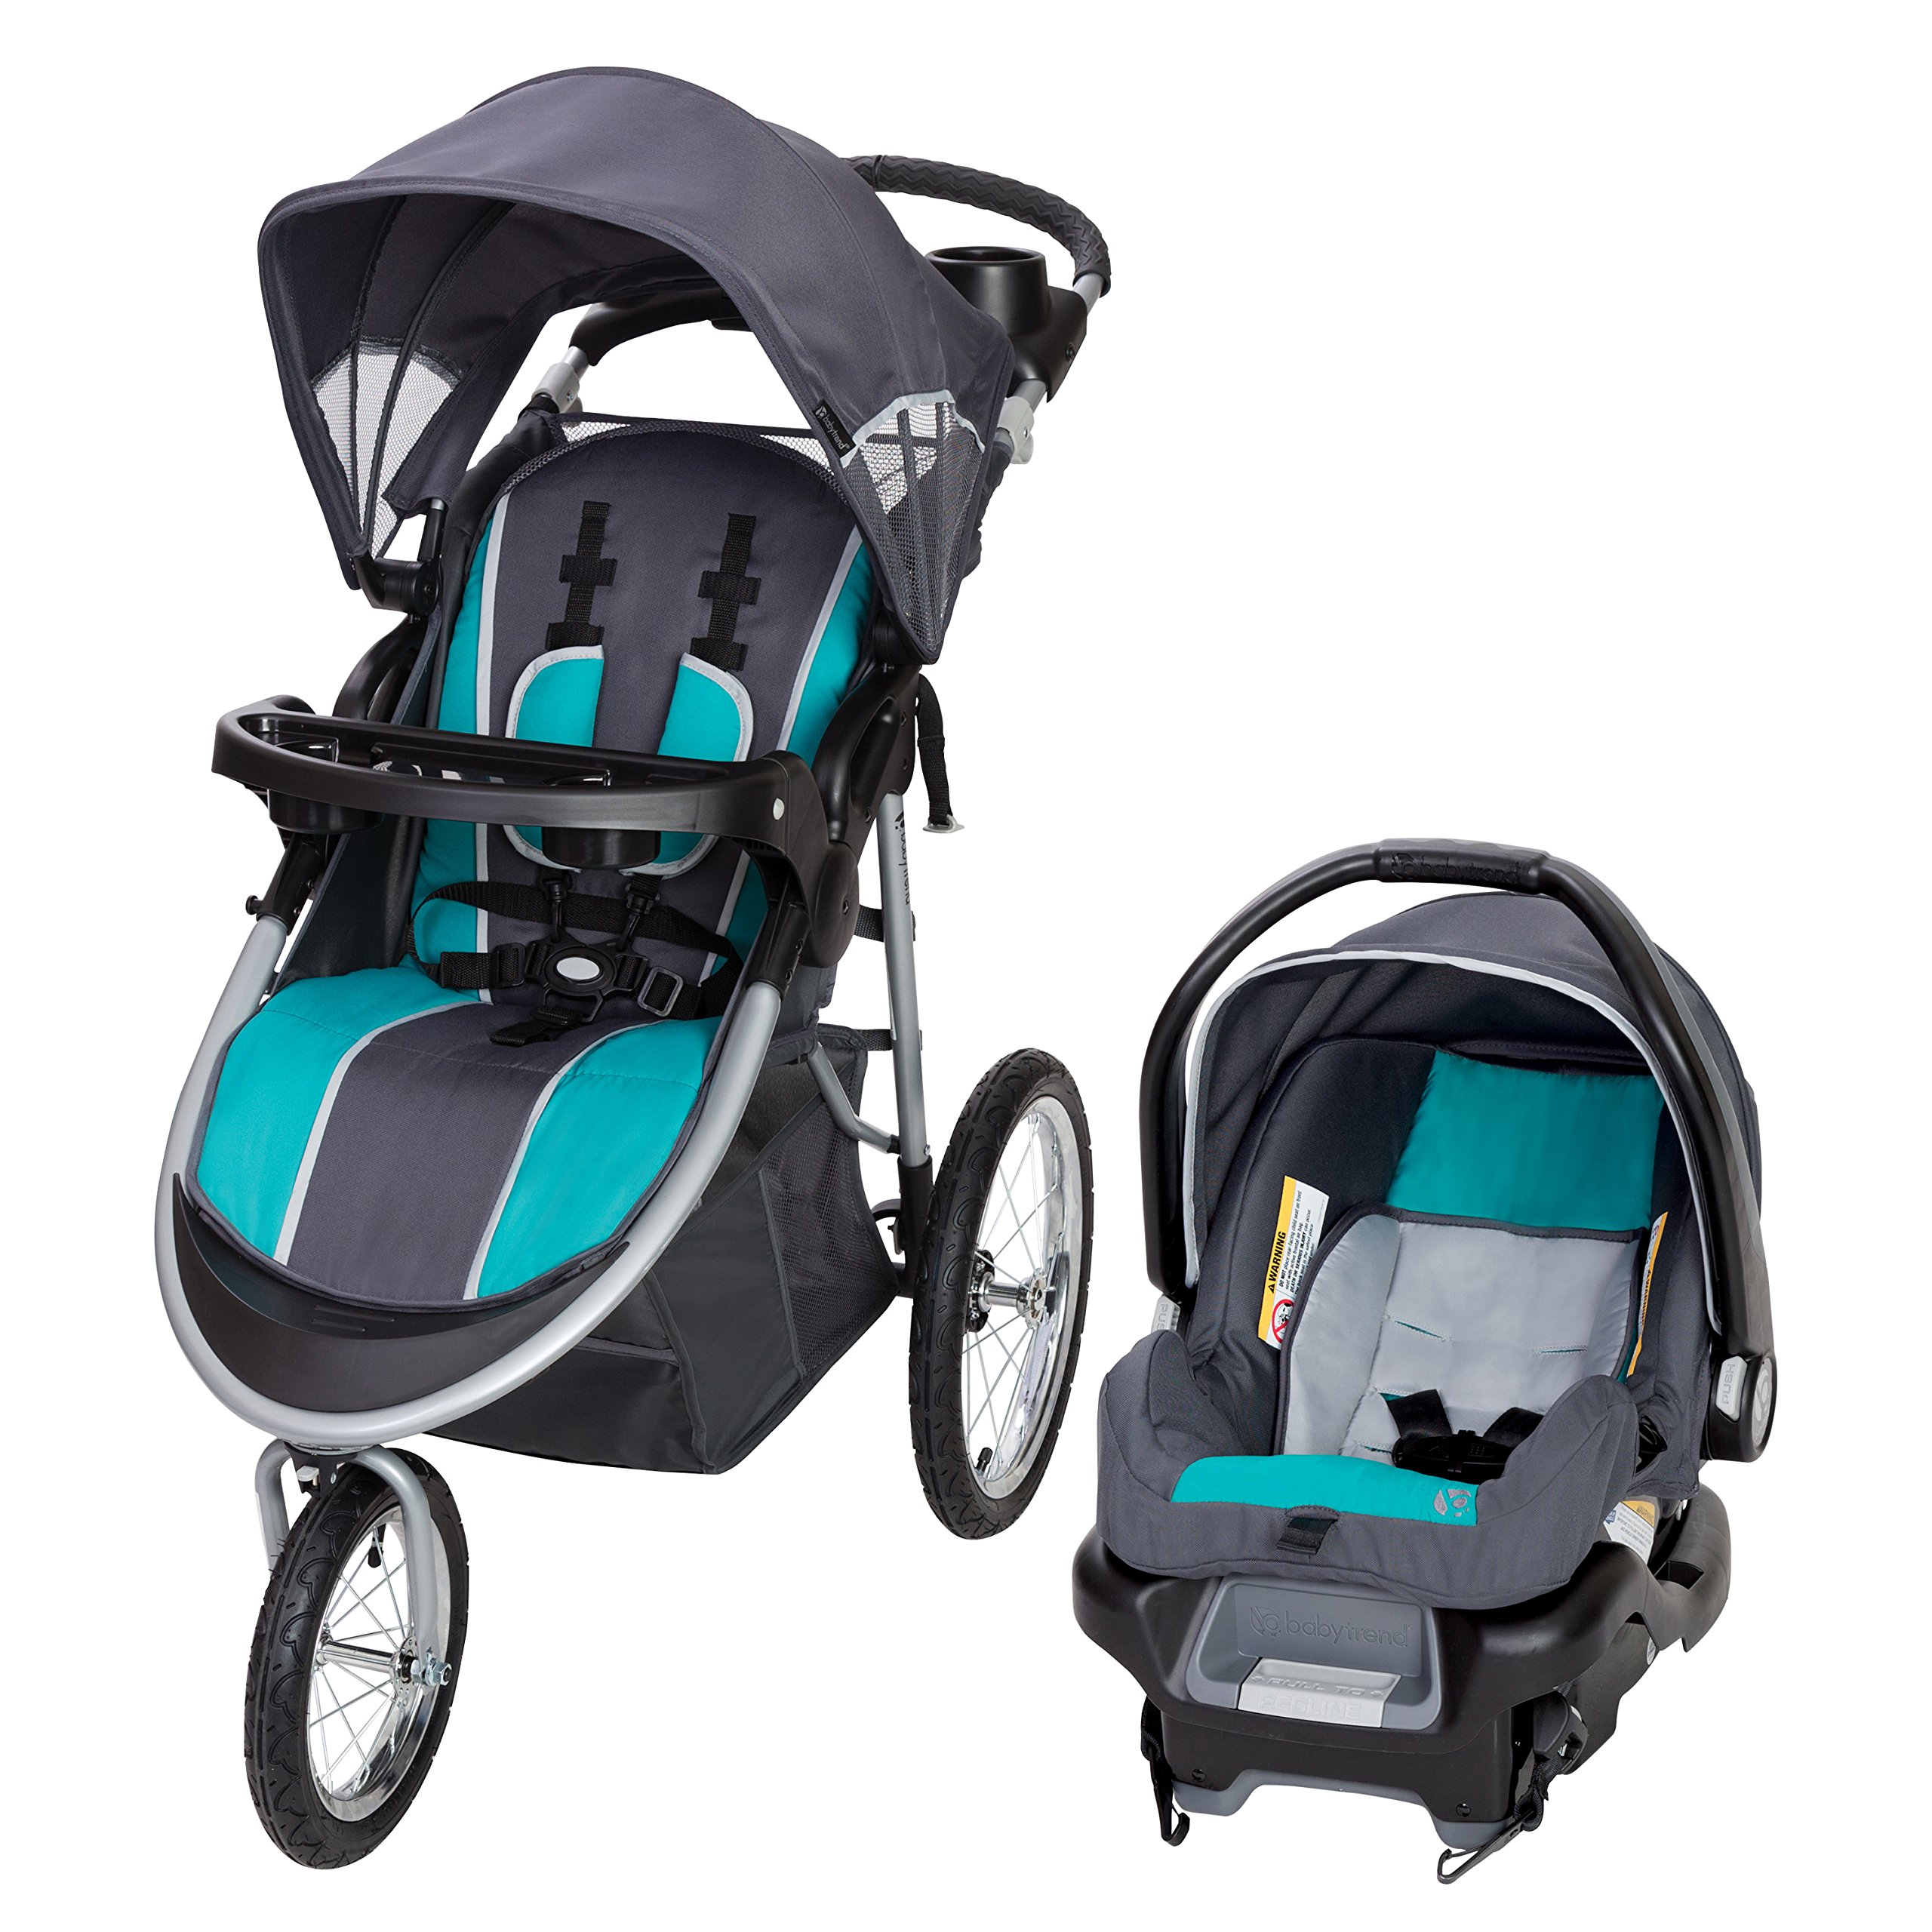 Baby Trend Pathway 35 Jogger Travel System, Optic Teal by Baby Trend